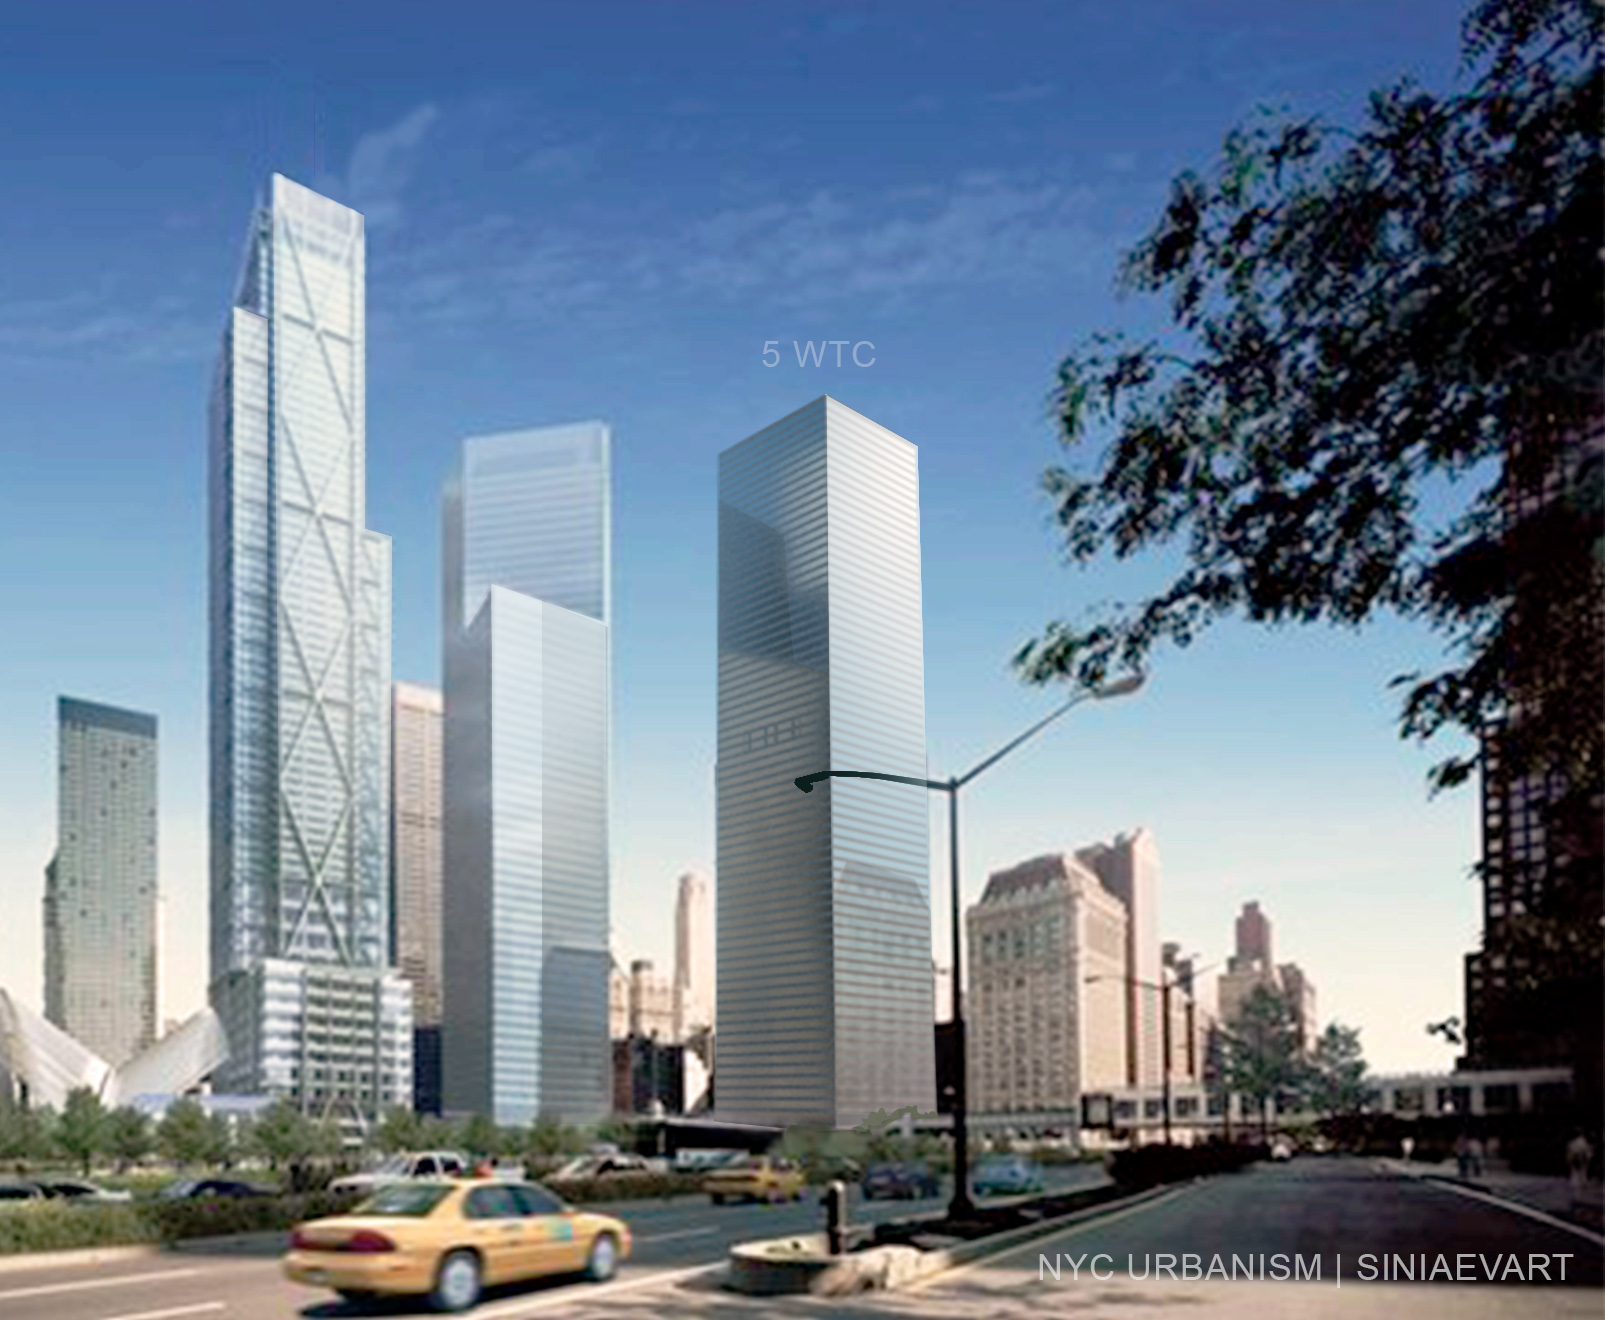 Rendering showing 5 WTC from West Street with 1.35 million square feet rising to 900 feet, as established in the Port Authority and LMDC's recent request for proposal. Rendering SINIAEVART for NYC Urbanism.